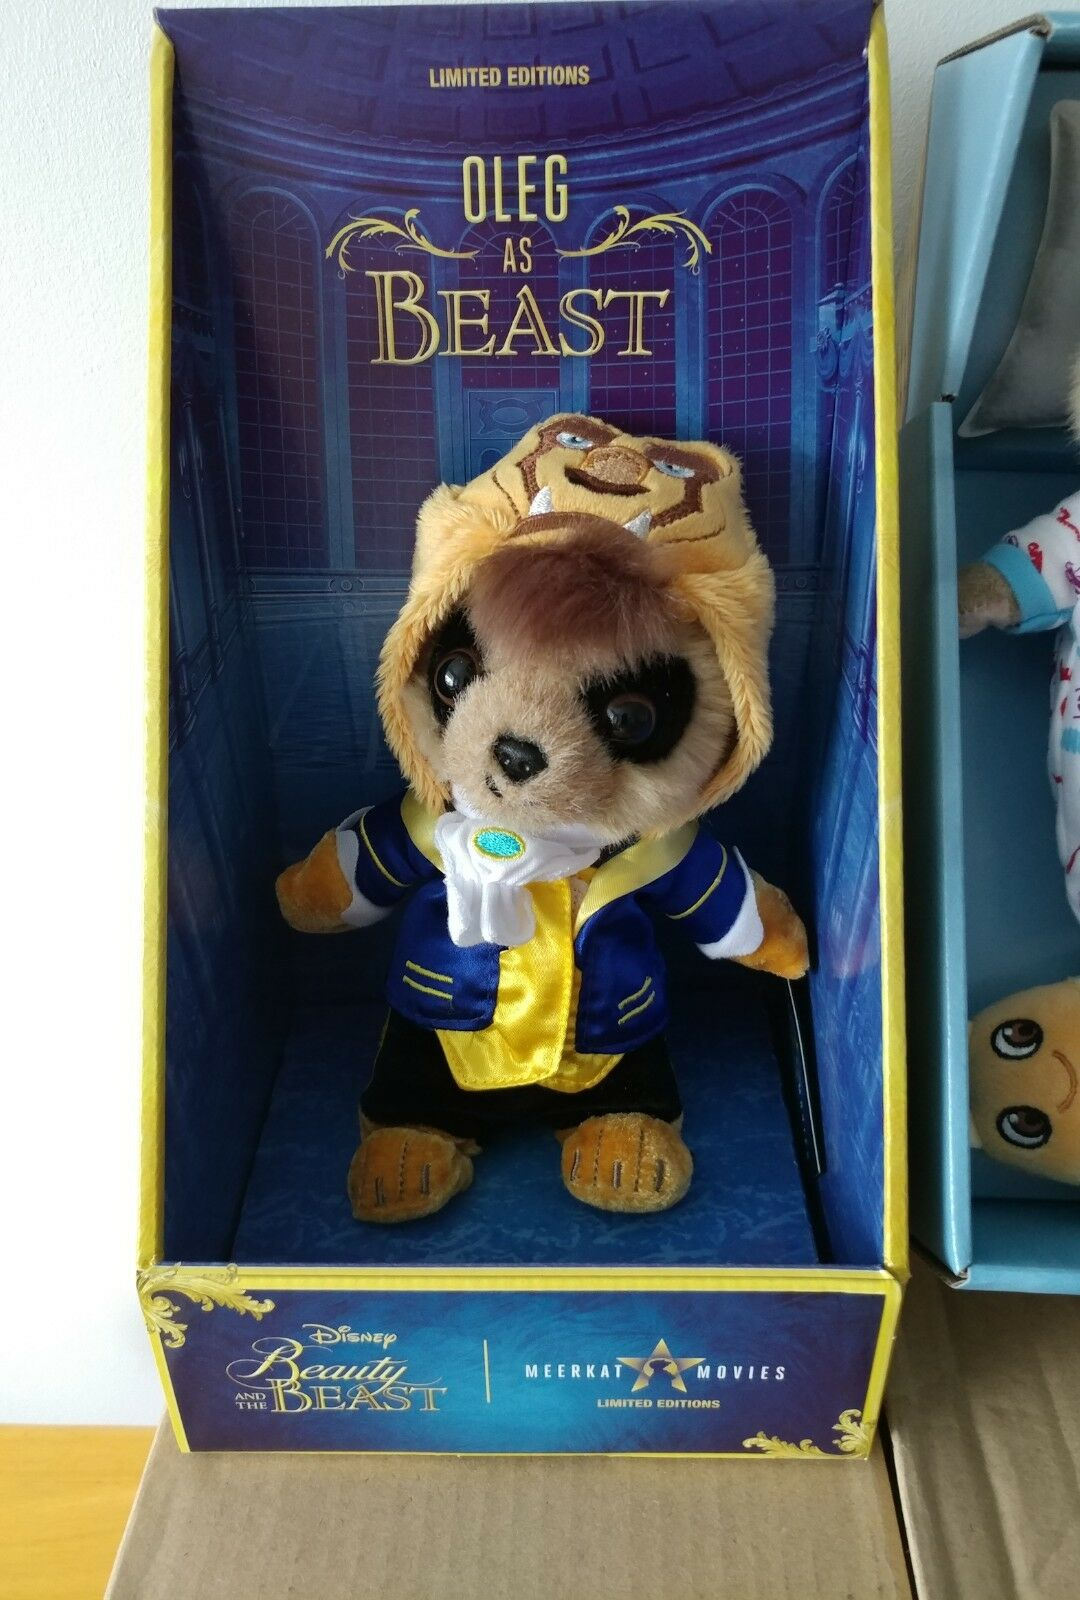 Oleg As Beast Meerkat Meerkat Meerkat 3 in set see pic 395b7b